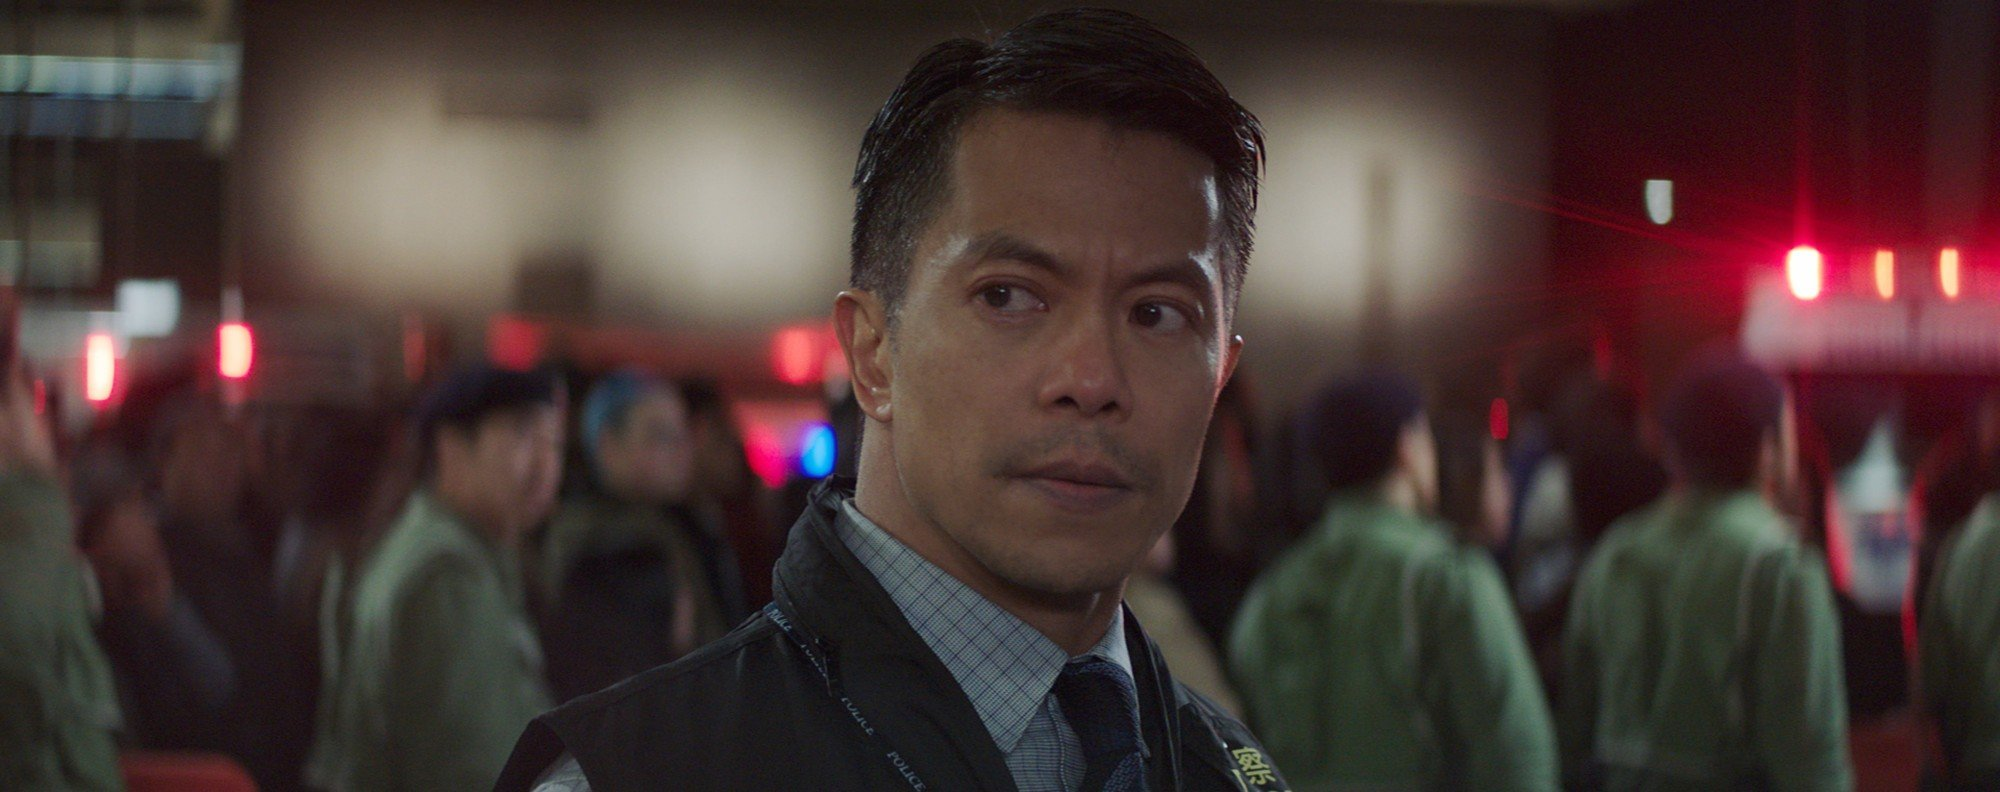 Byron Mann in Skyscraper. Picture: courtesy of Universal Pictures